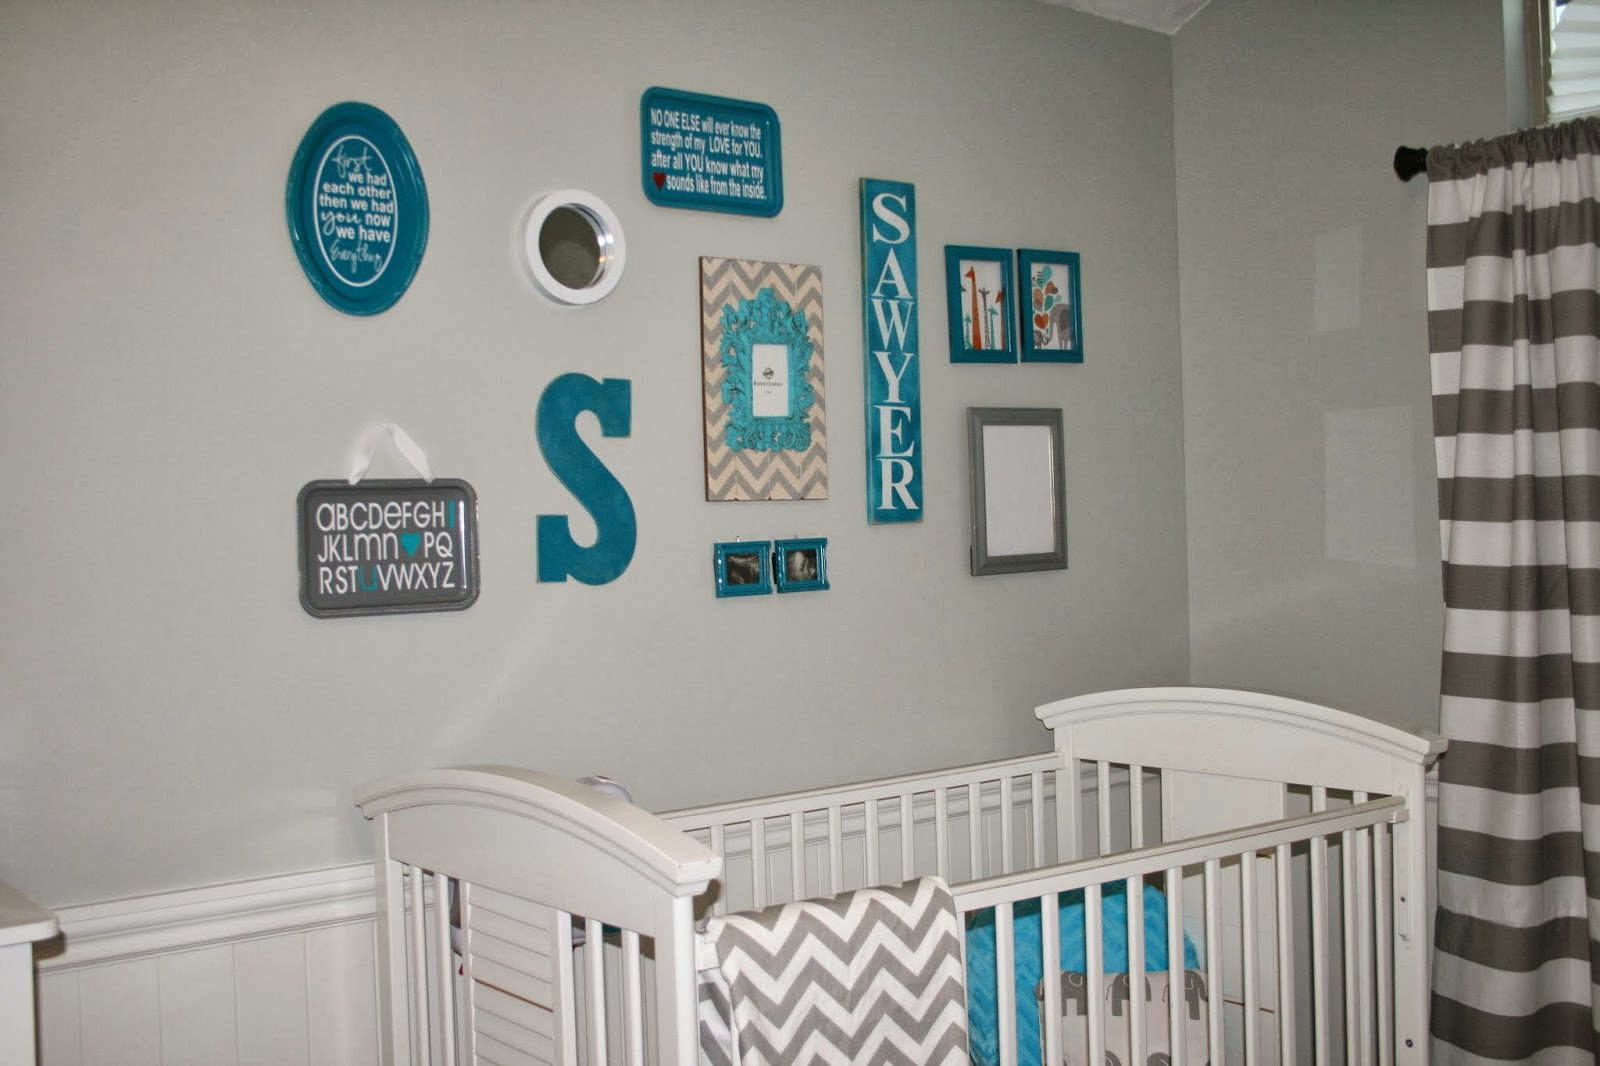 Creative juices baby room decor and collage wall Images of wall decoration